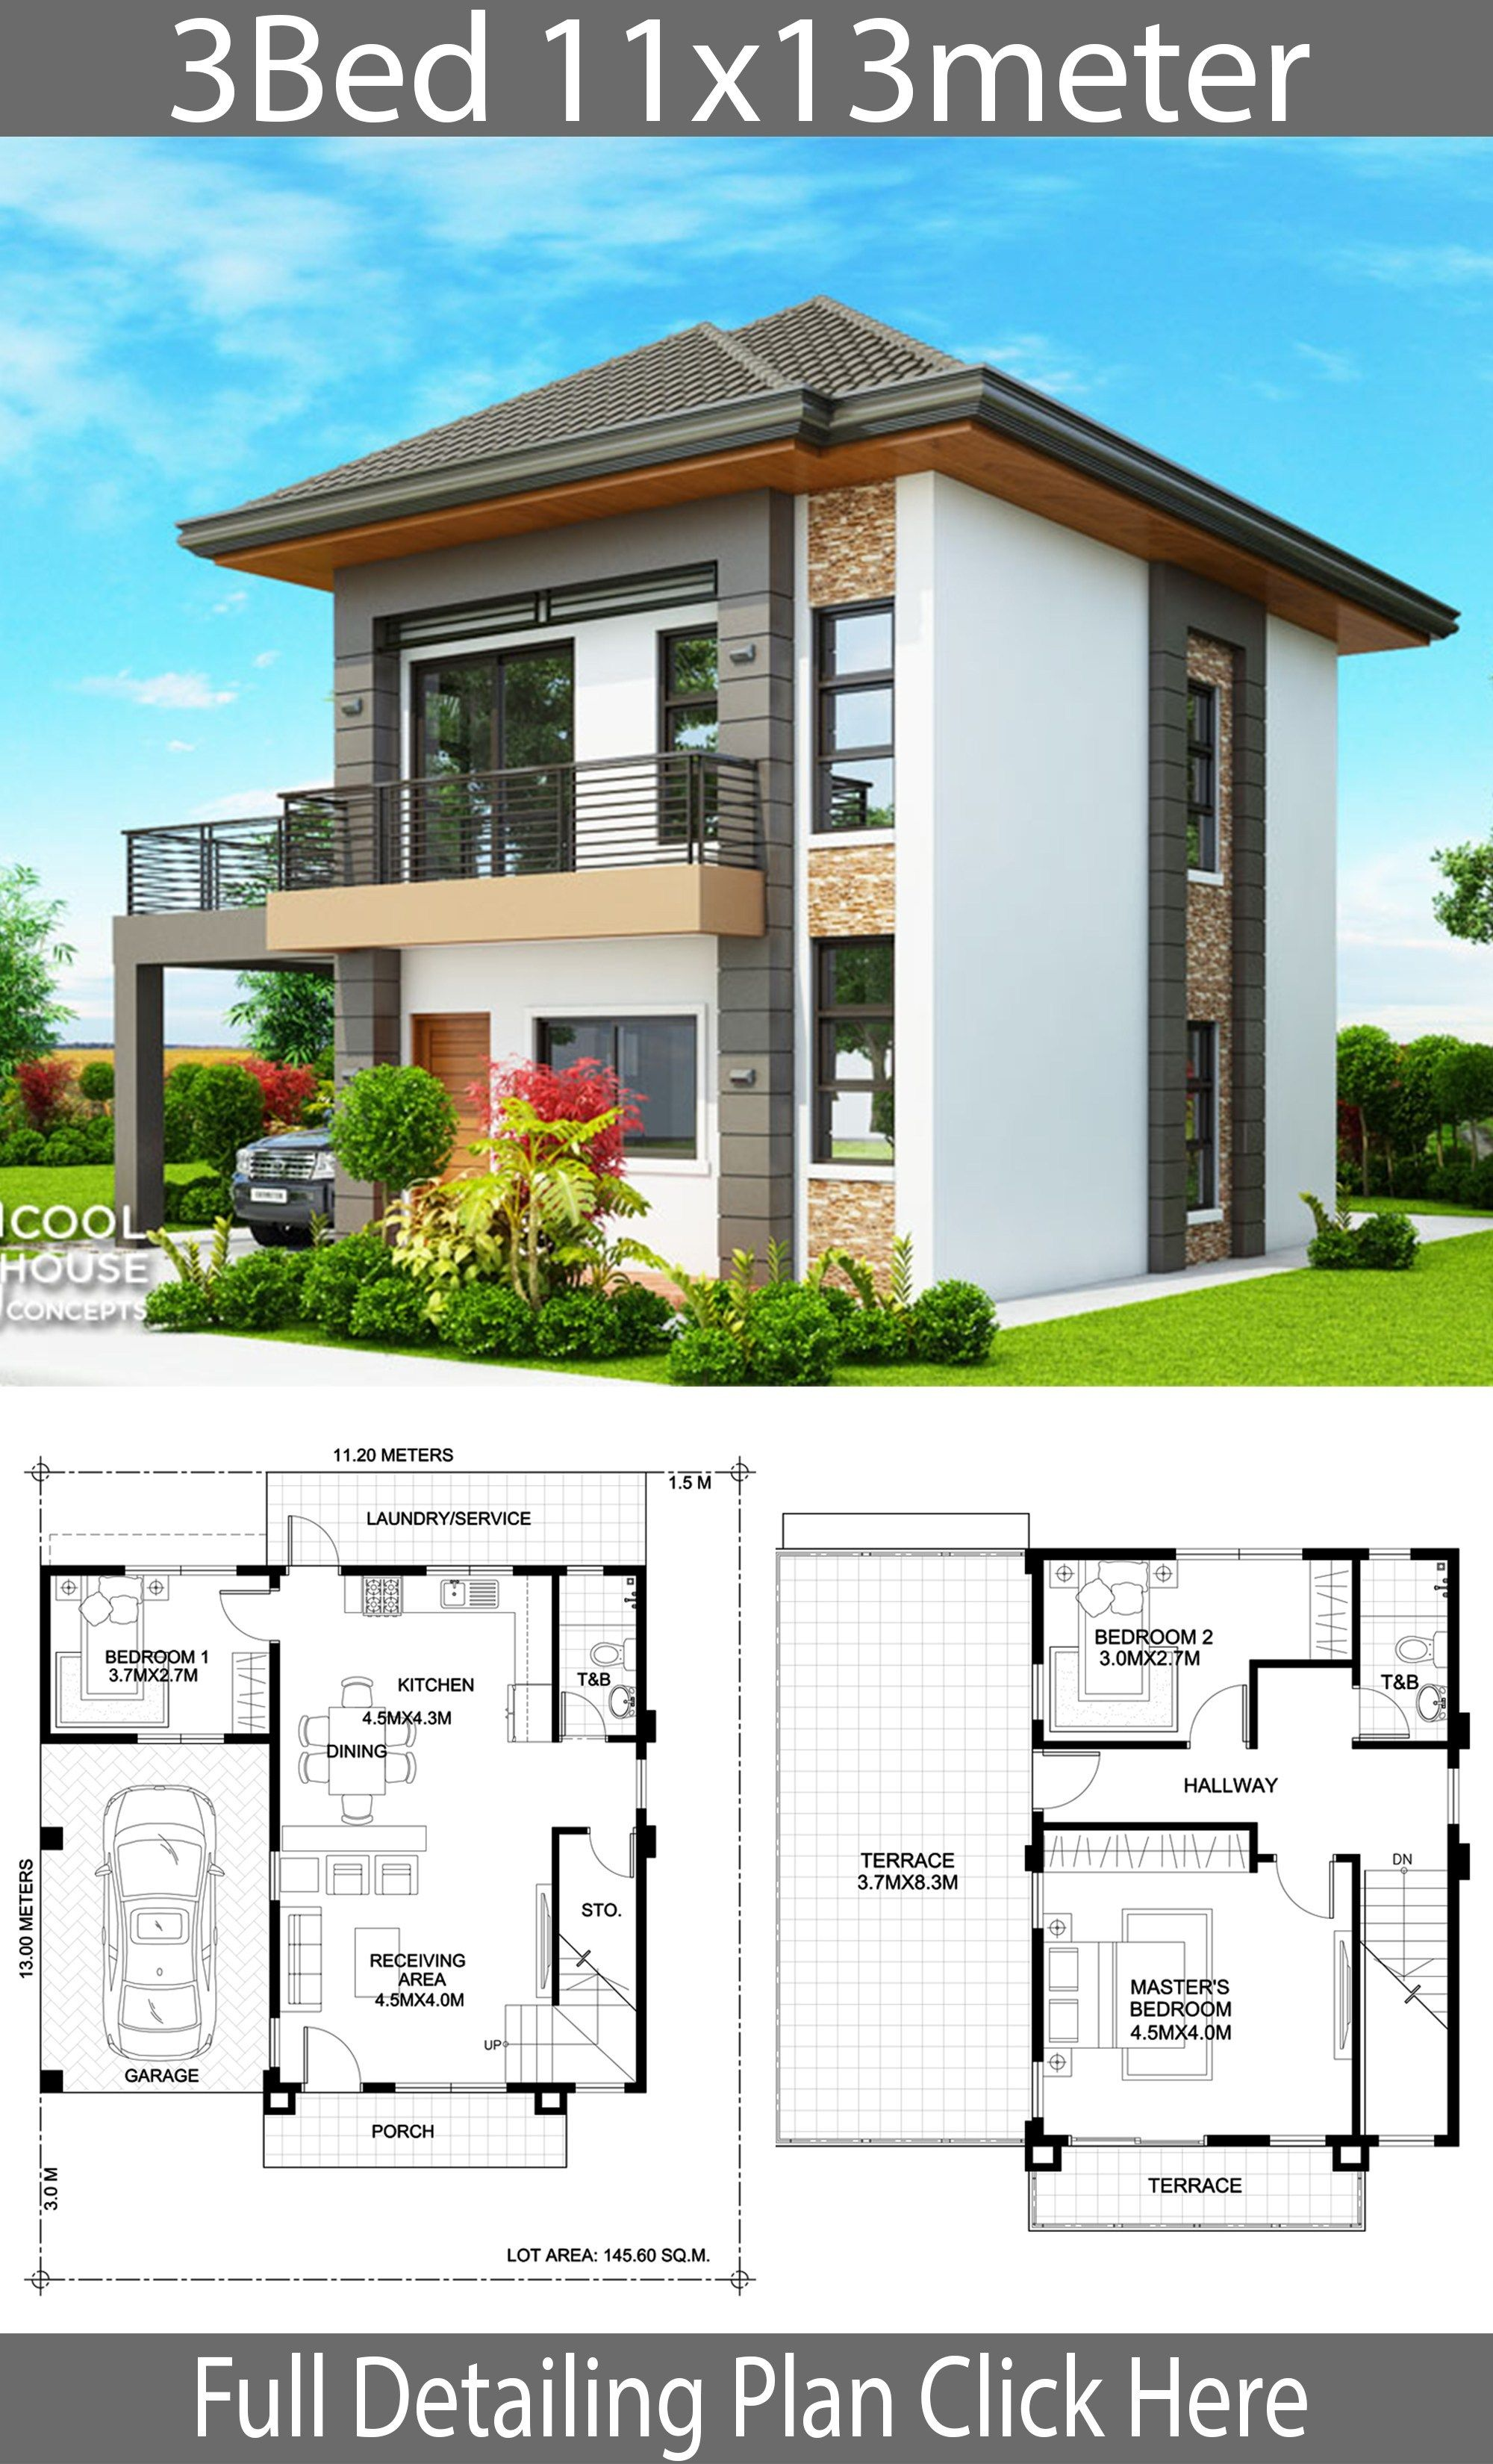 Home Design Plan 11x13m With 3 Bedrooms Home Design With Plan 2 Storey House Design House Architecture Design Small House Design Plans